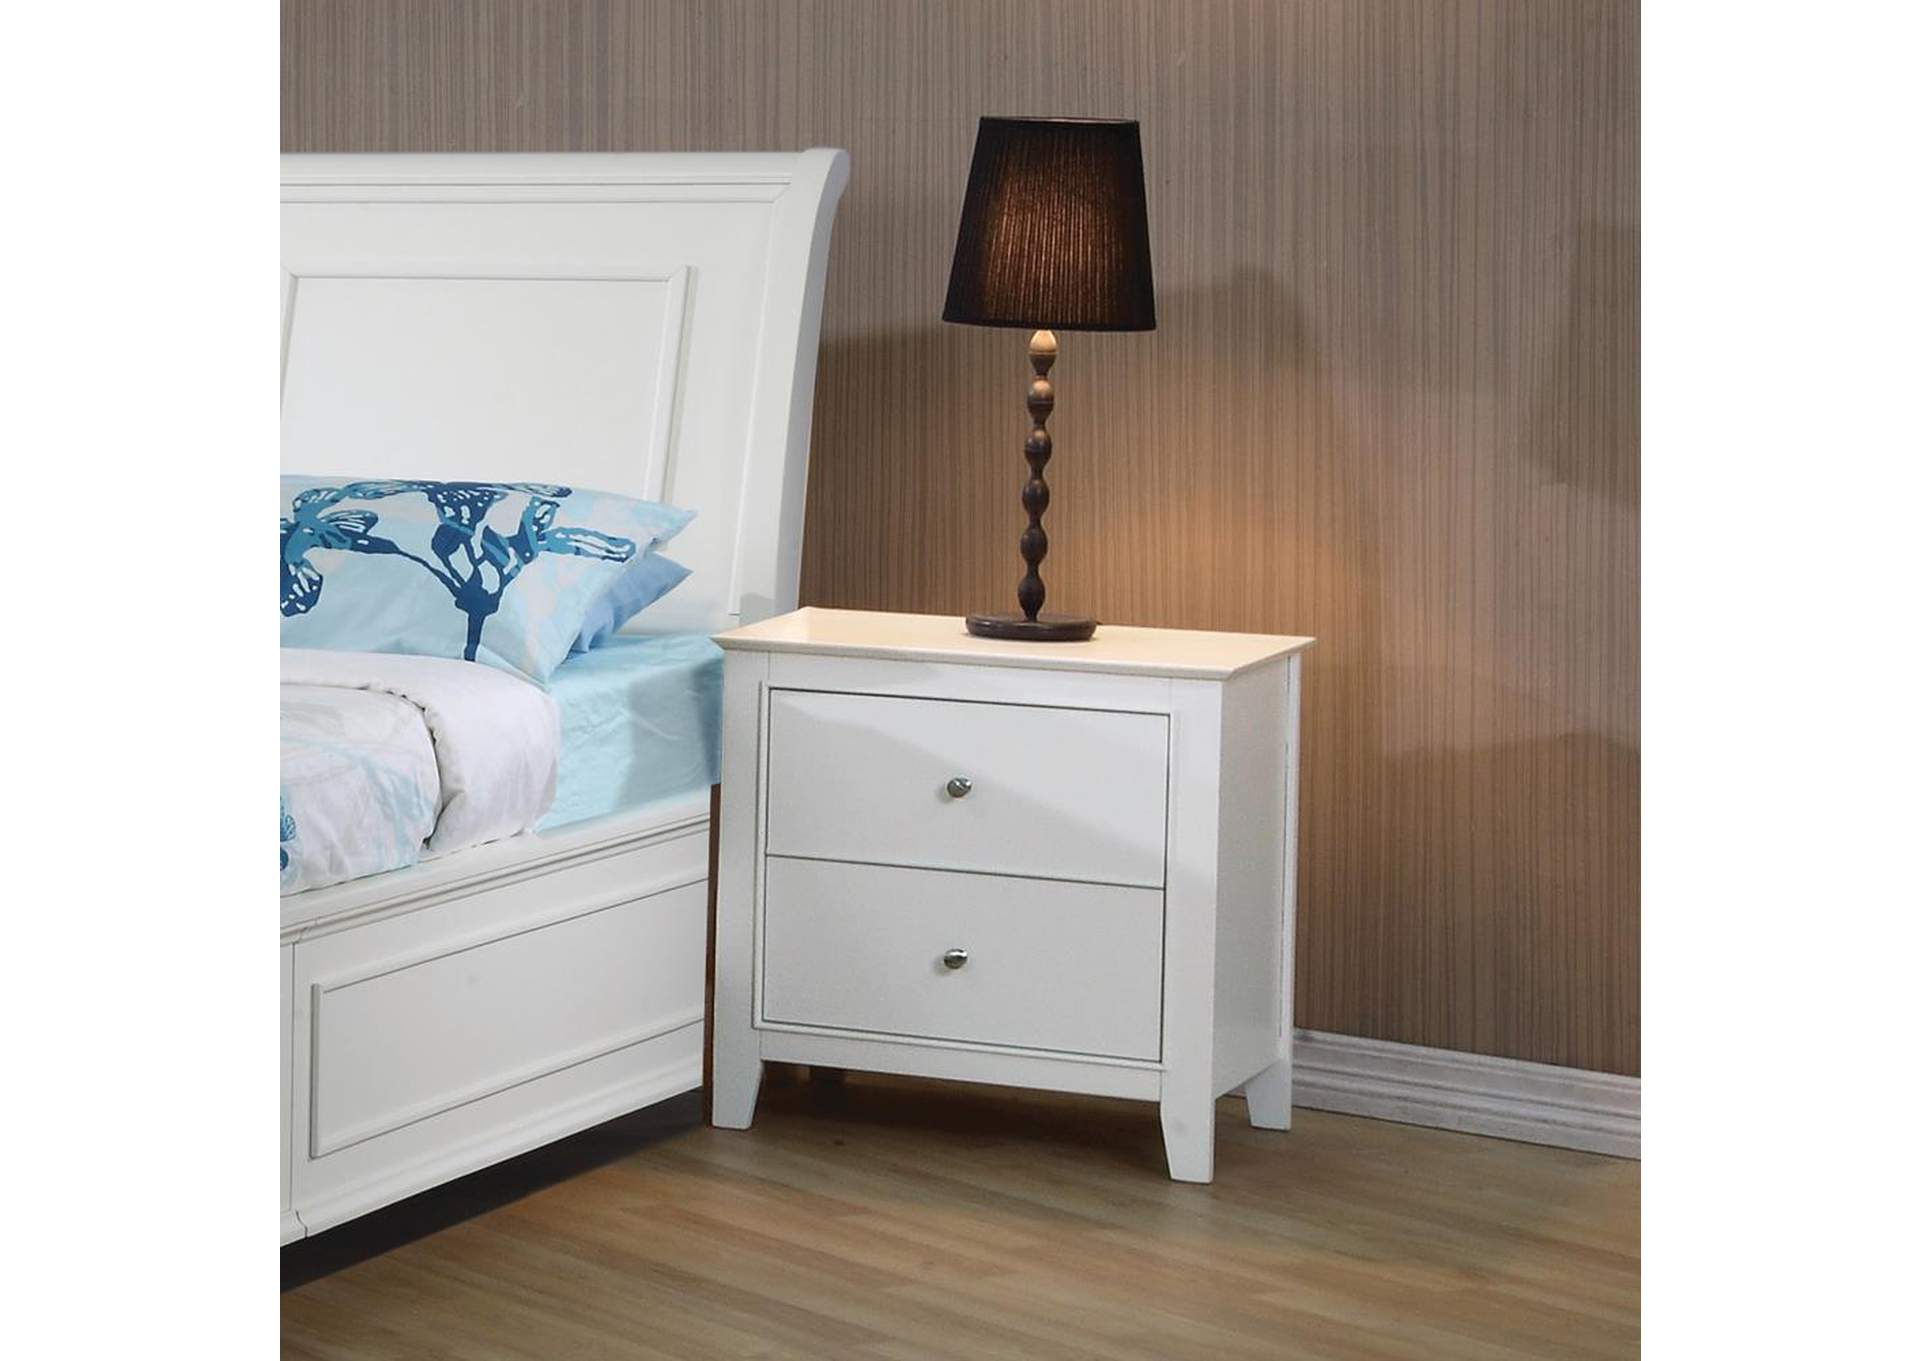 Selena White Nightstand,ABF Coaster Furniture